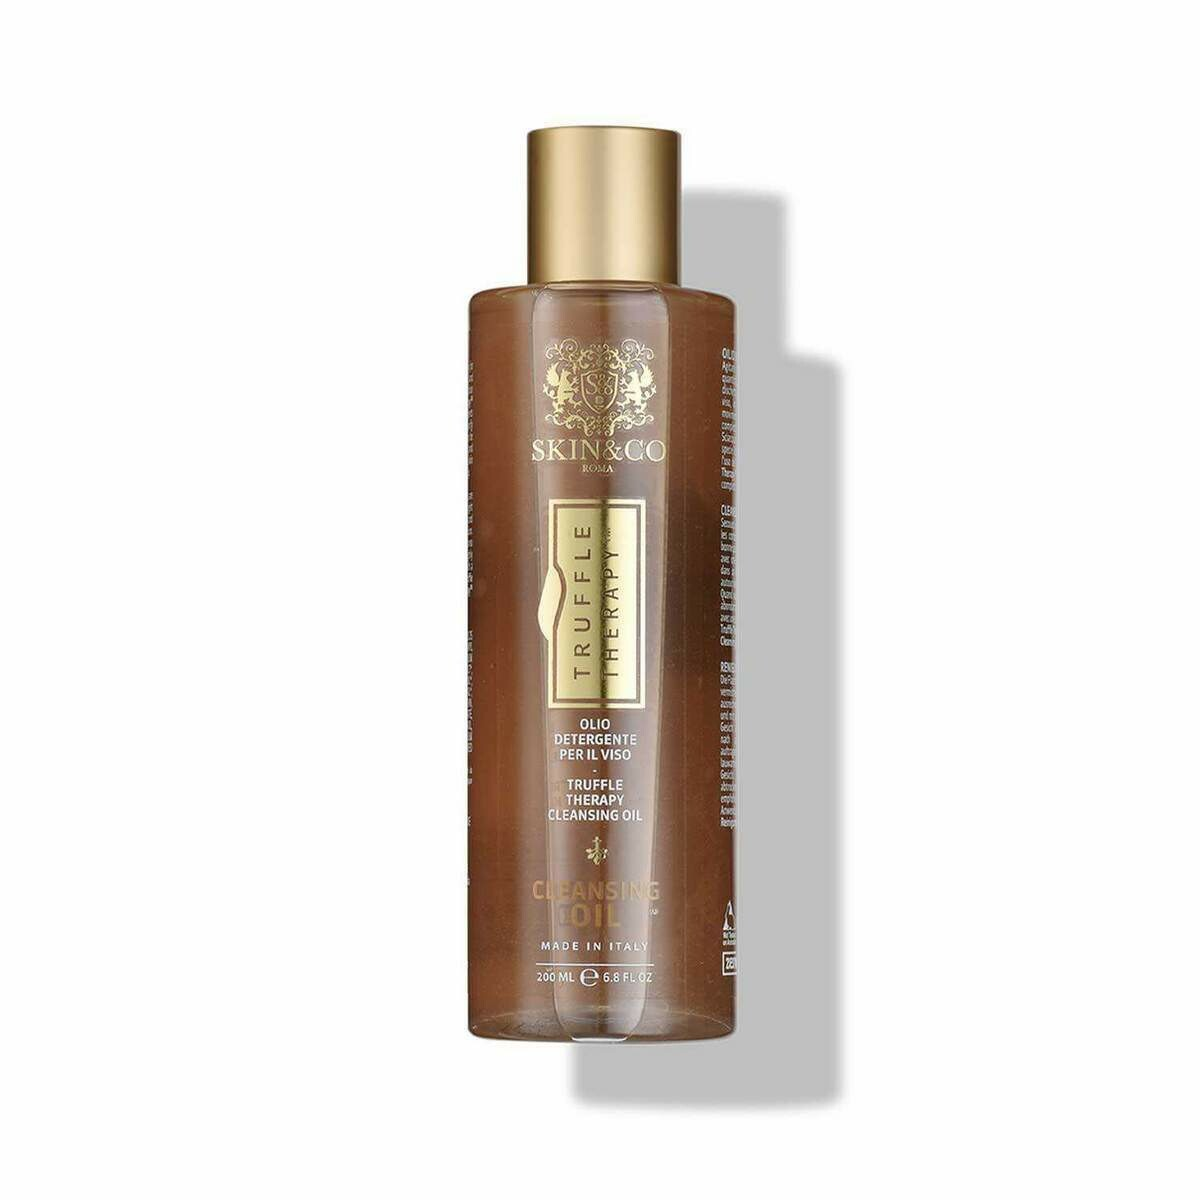 SKIN&CO Truffle Therapy Cleansing Oil 200ML